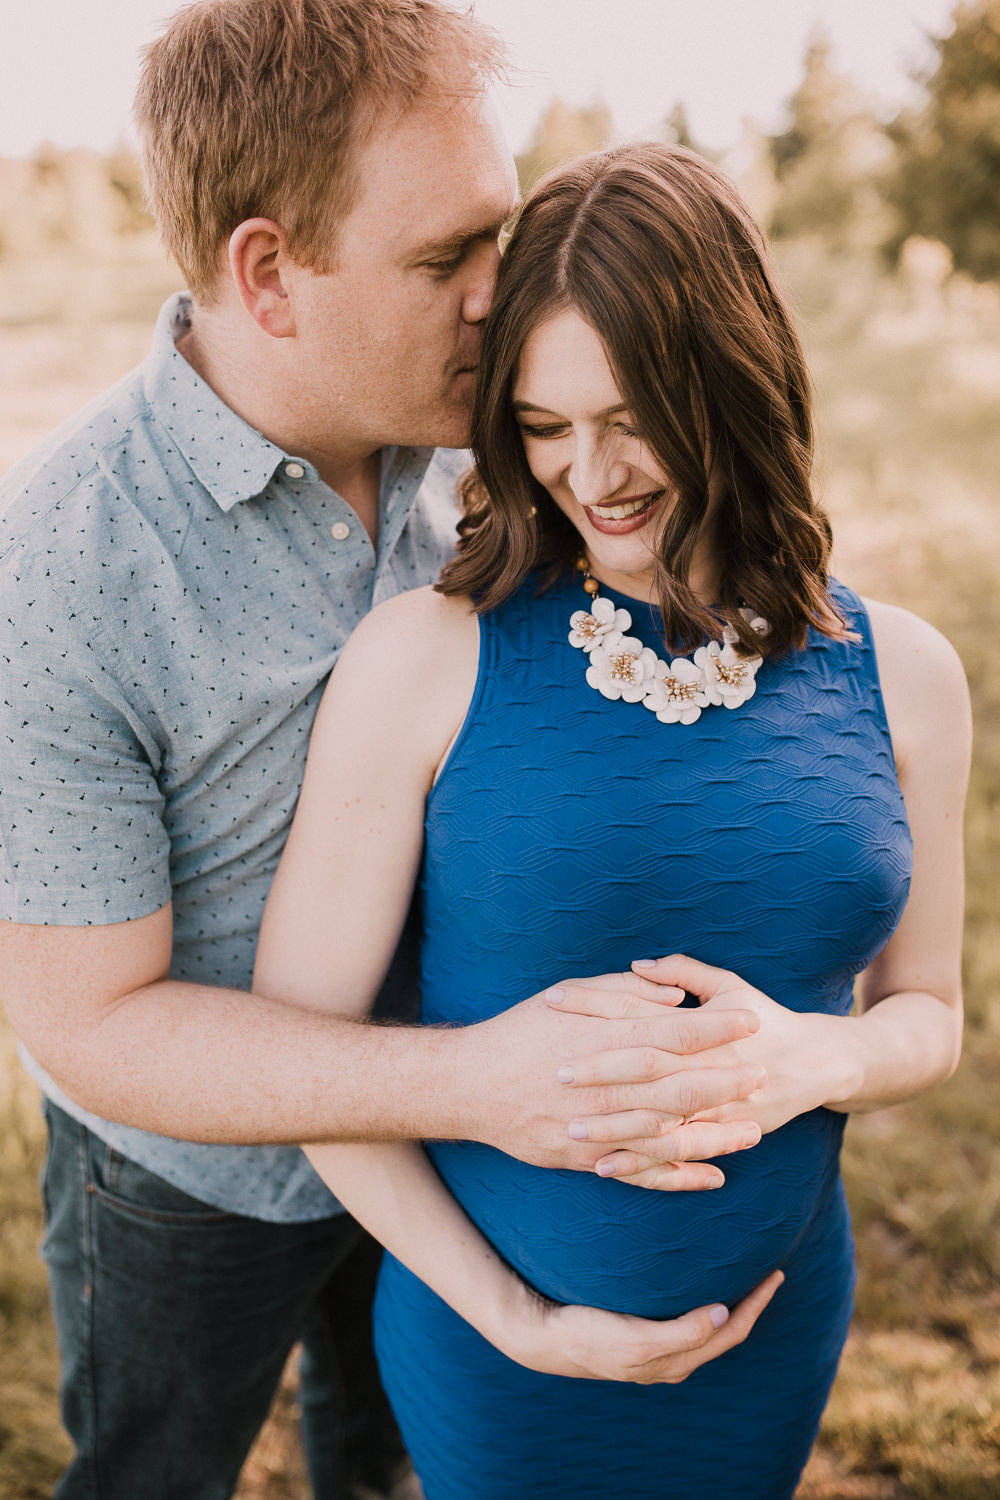 husband embraces pregnant wife in blue dress and kisses her on cheek at sunset - Newmarket Outdoor Photography